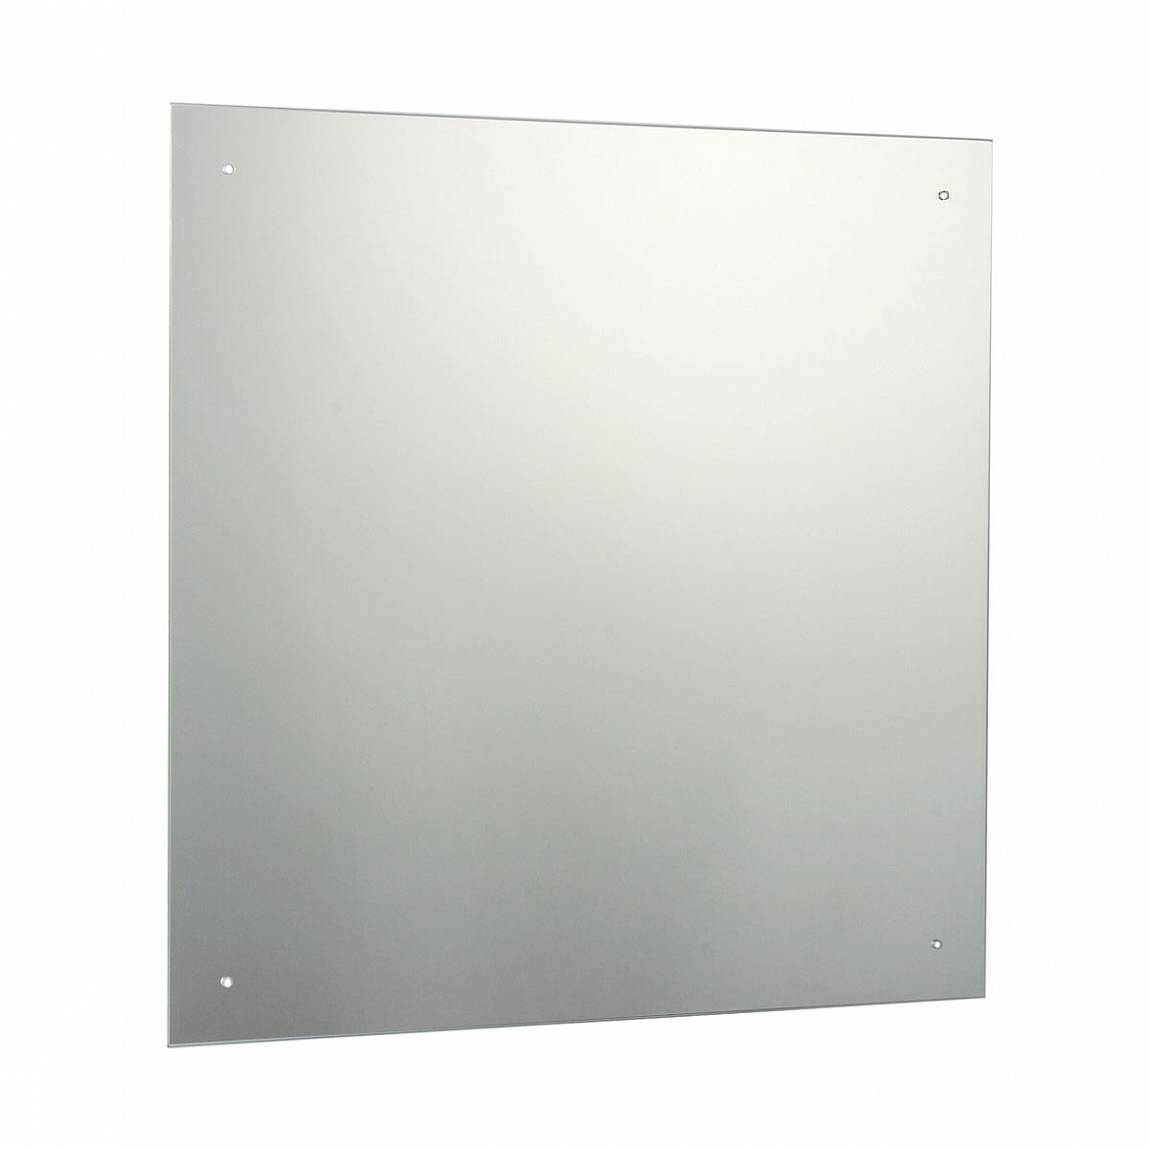 Image of Square Drilled Mirror 60x60cm